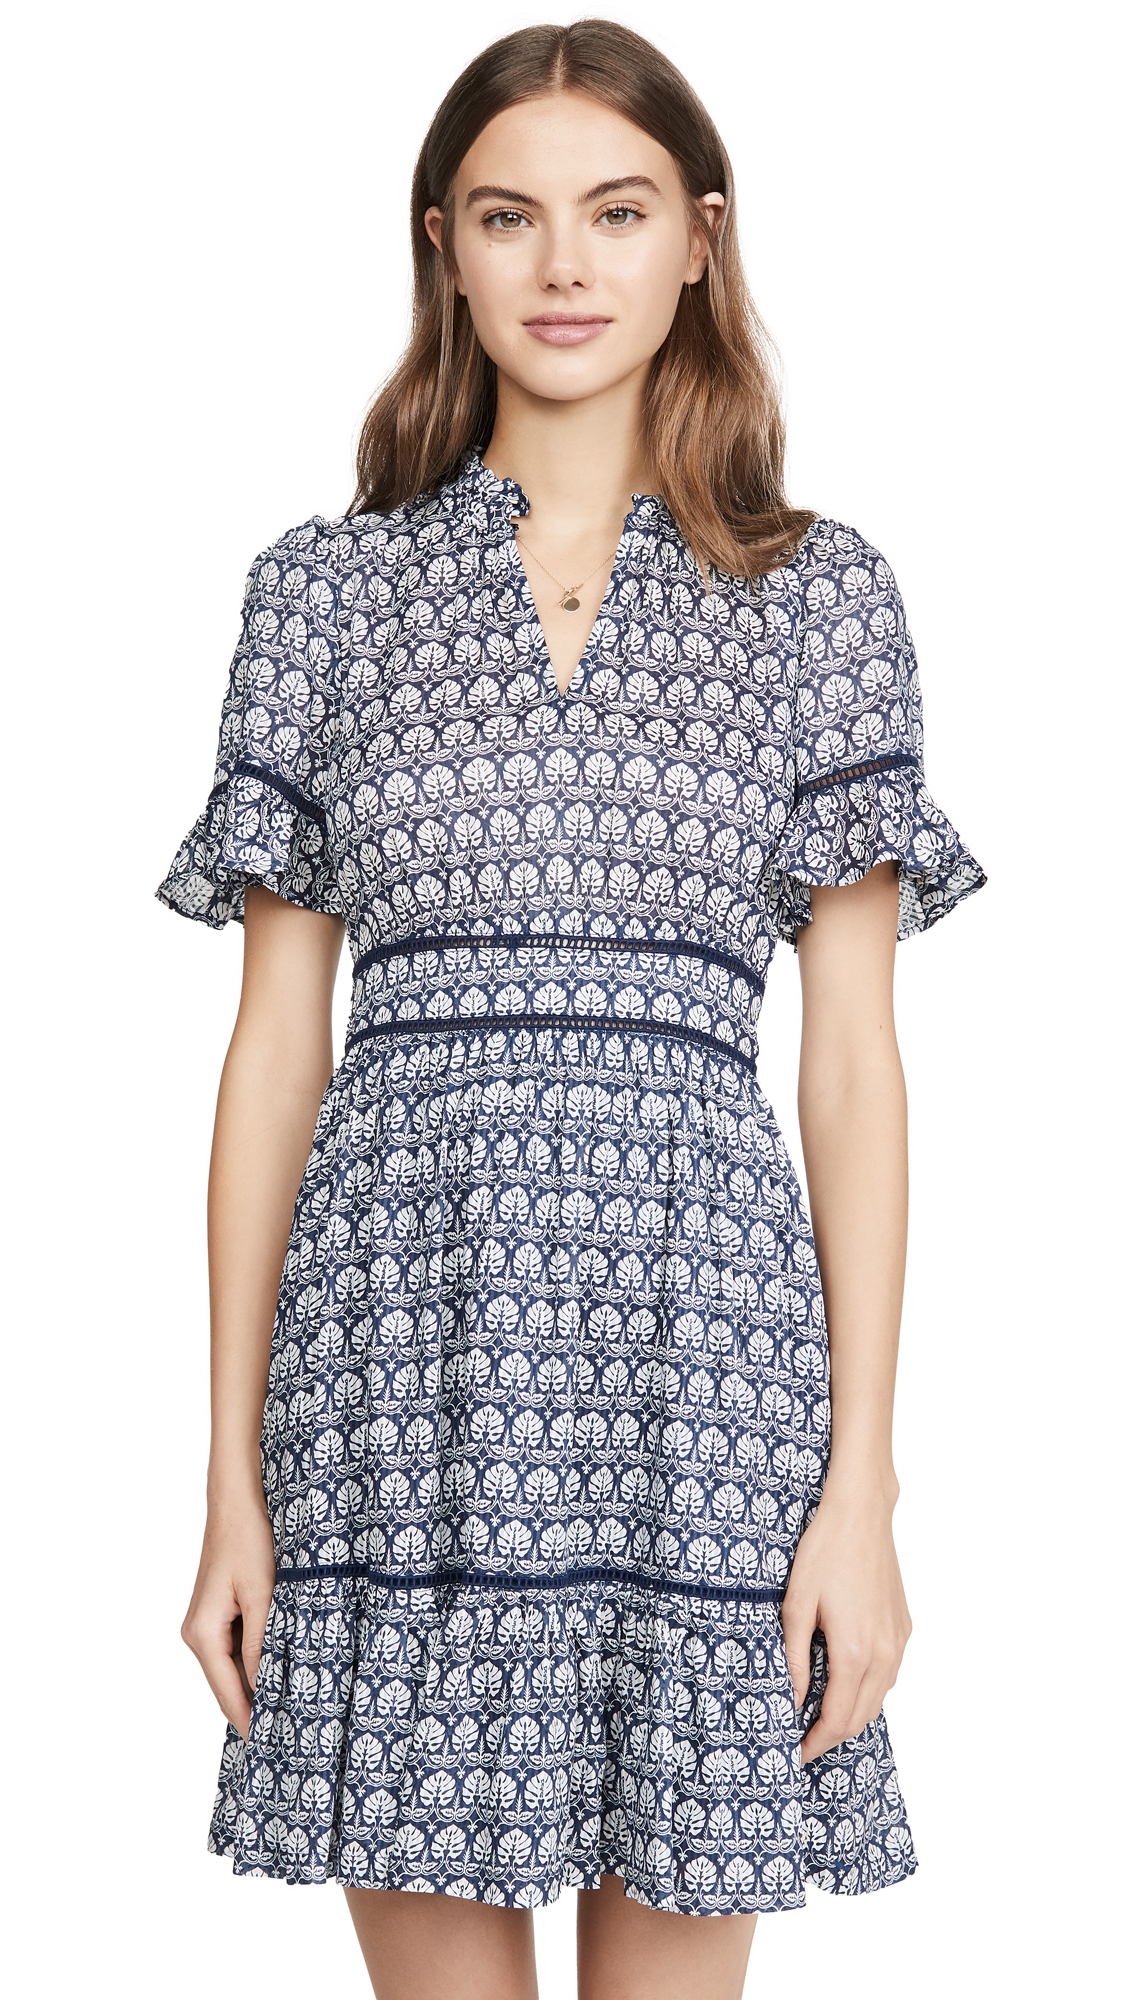 Scotch & Soda/Maison Scotch Printed Dress - 40% Off Sale